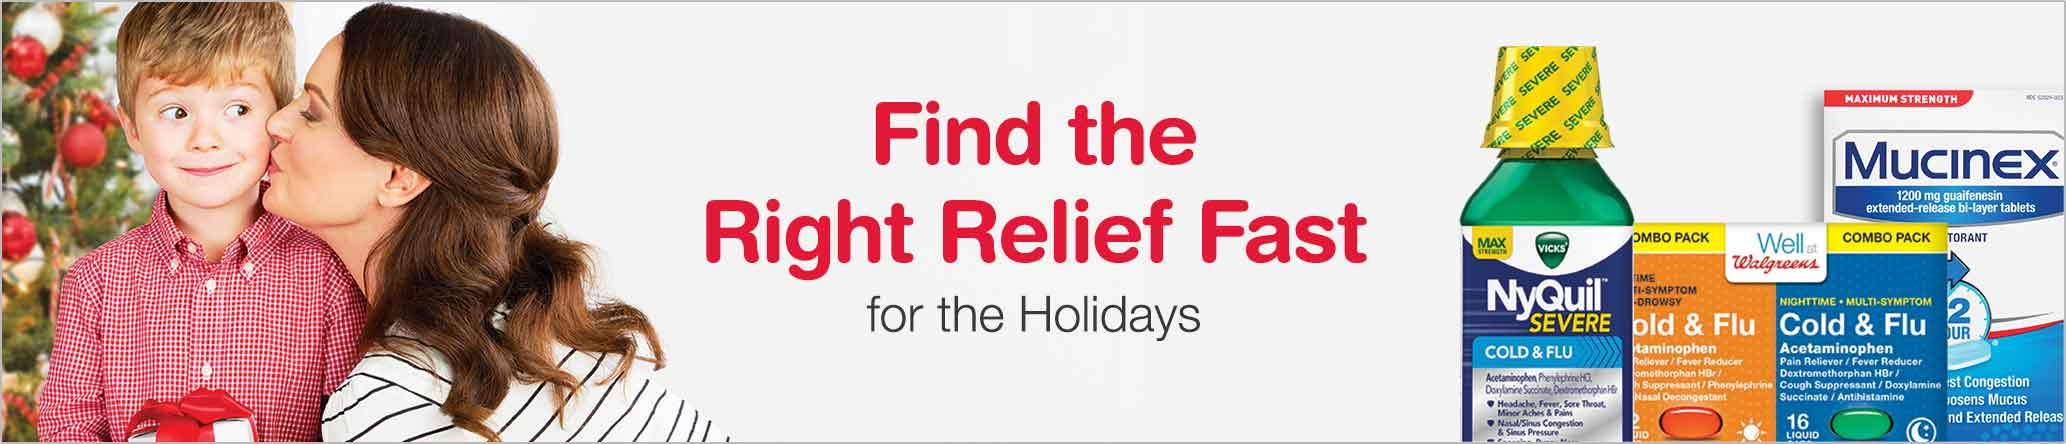 Find the right relief fast for the Holidays.